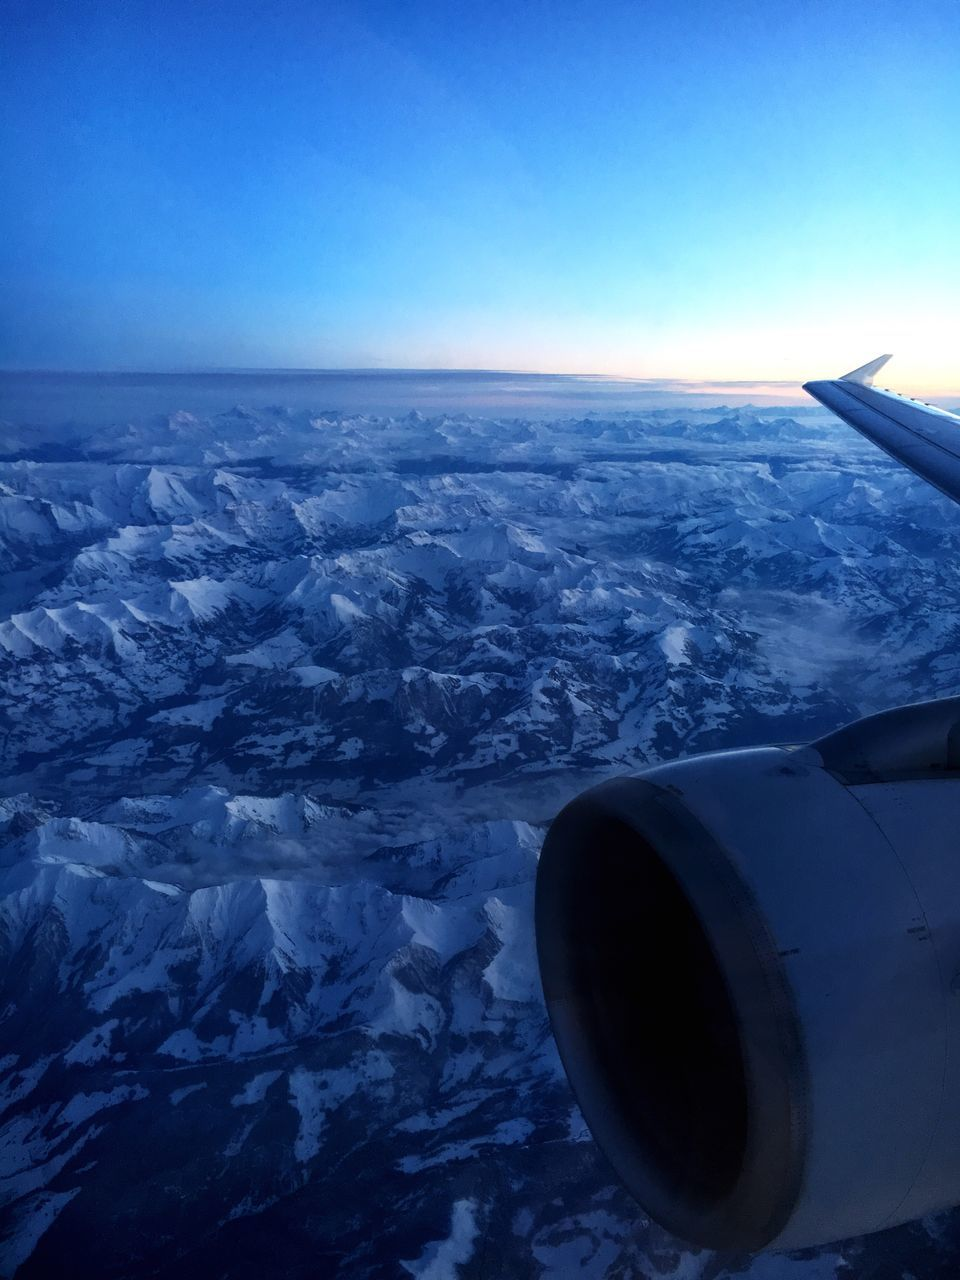 airplane, aerial view, transportation, flying, nature, no people, mid-air, blue, air vehicle, airplane wing, beauty in nature, scenics, aircraft wing, outdoors, sky, journey, day, mode of transport, vehicle part, jet engine, clear sky, sea, landscape, close-up